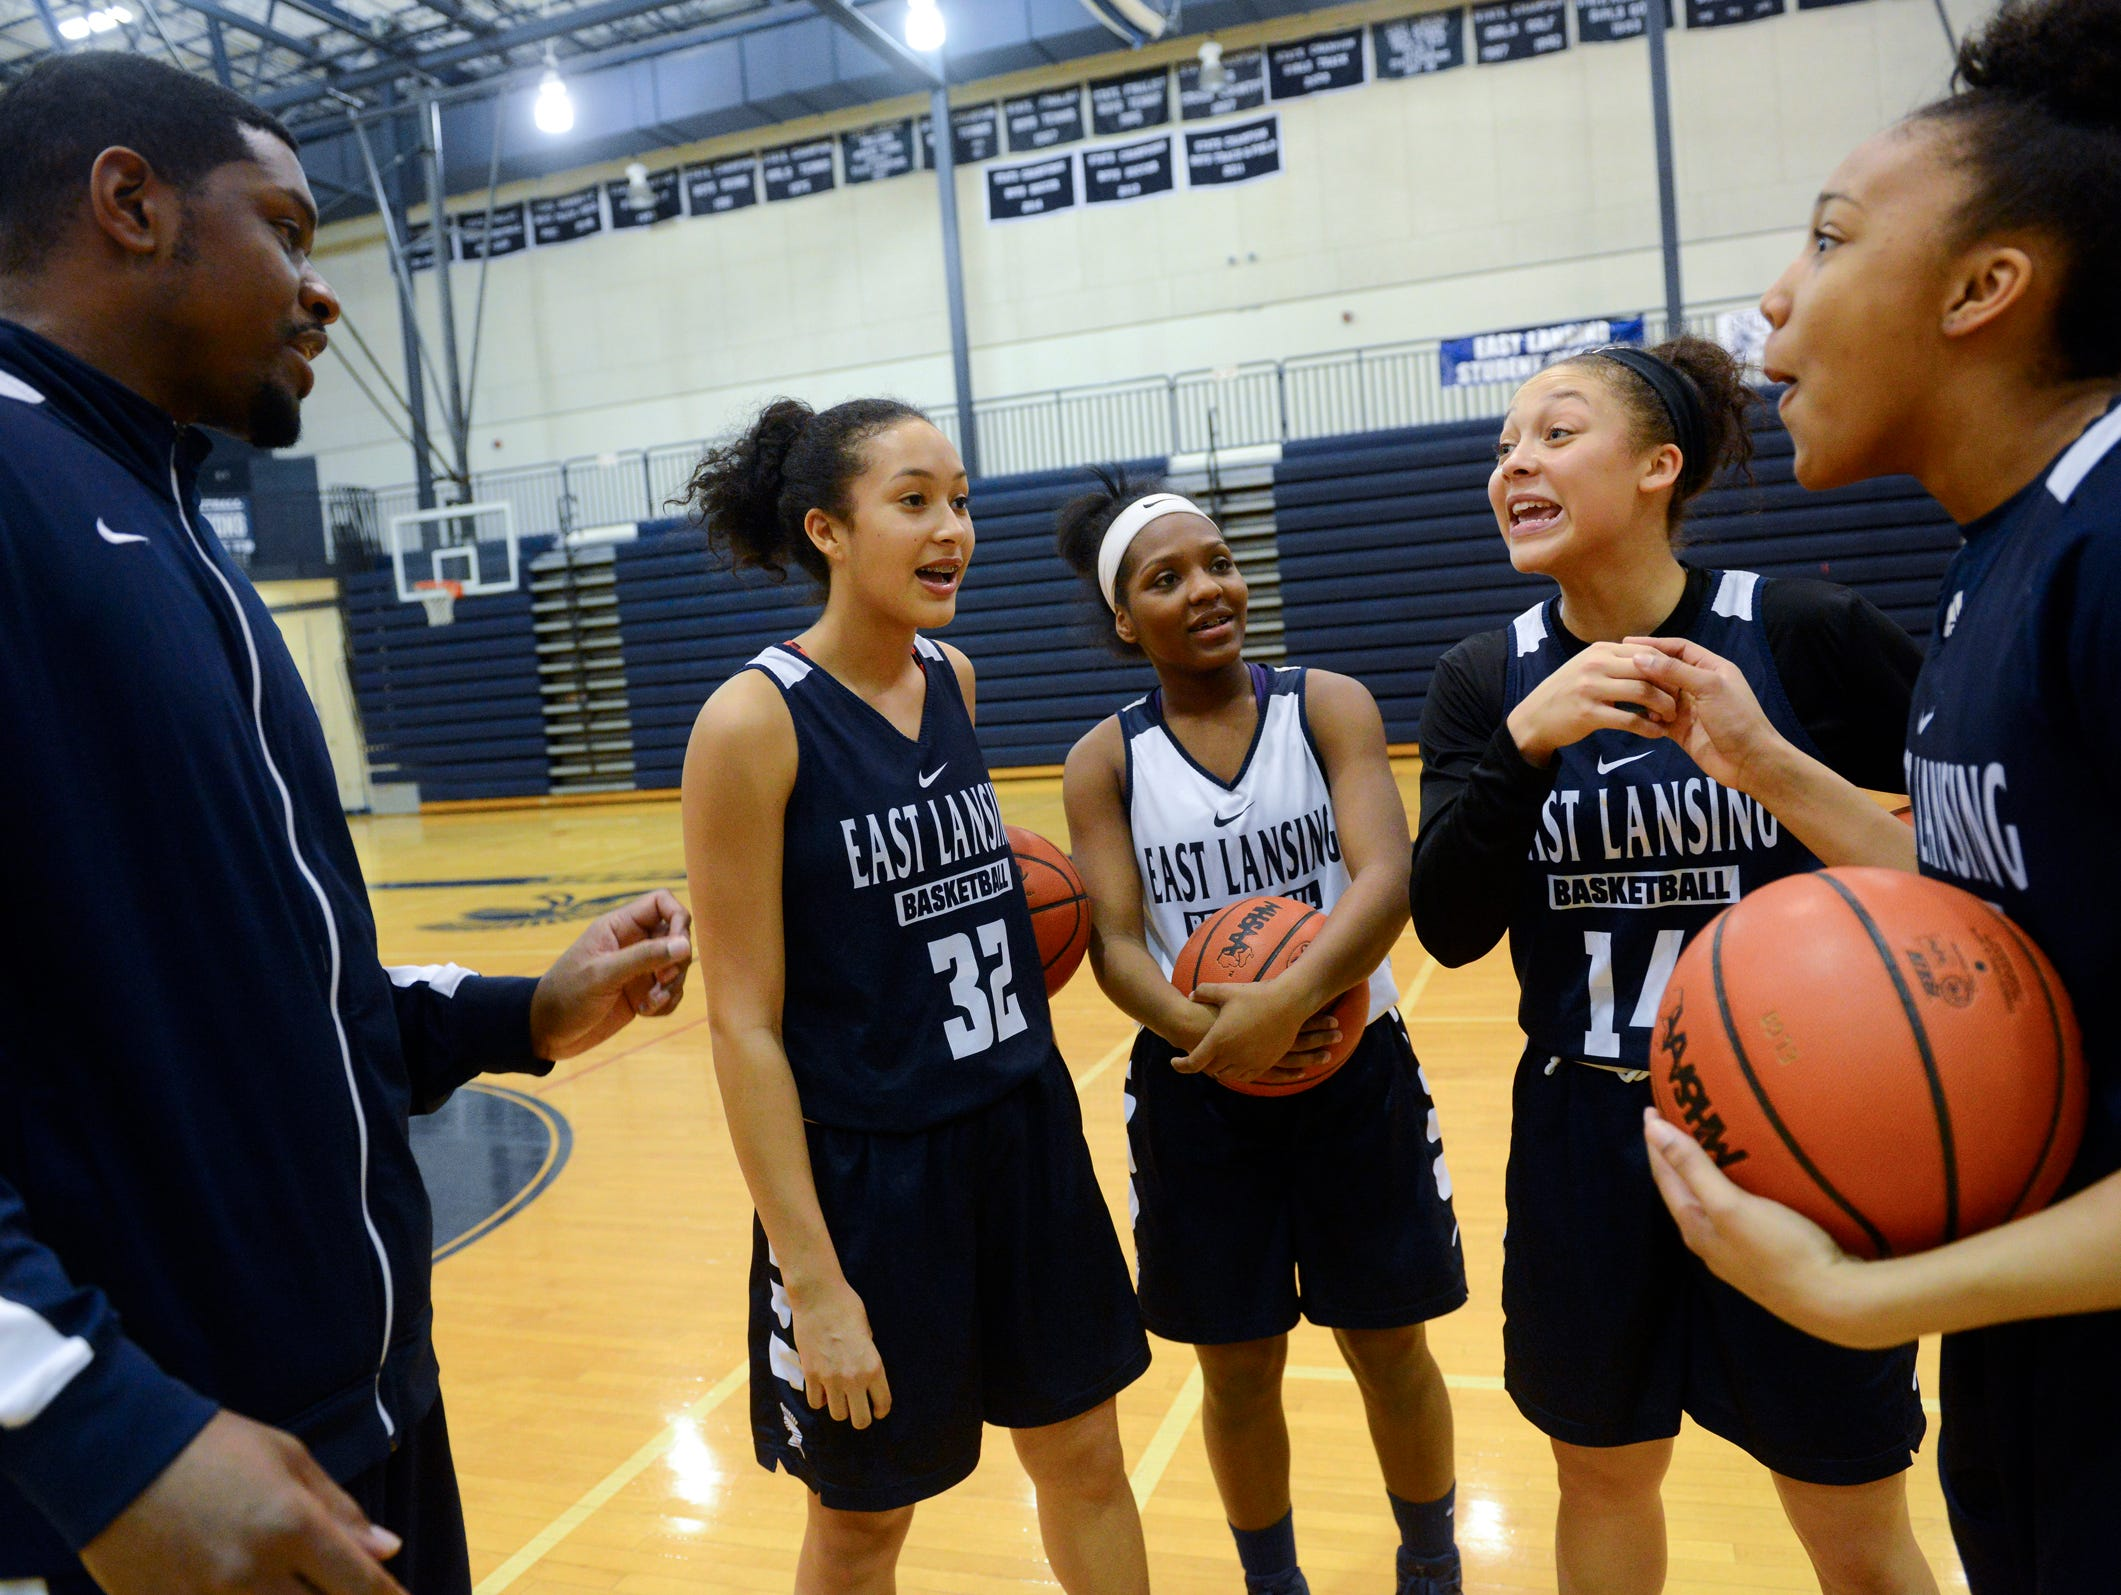 From left to right, Bill Hamilton, an assistant coach, Aaliyah Nye, Kalaia Hampton, Aazh Nye and Jaida Hampton chat during practice on Thursday, Feb. 23, 2017 at East Lansing High School. Aaliyah and Aazh are sisters. Kalaia and Jaida are sisters as well.